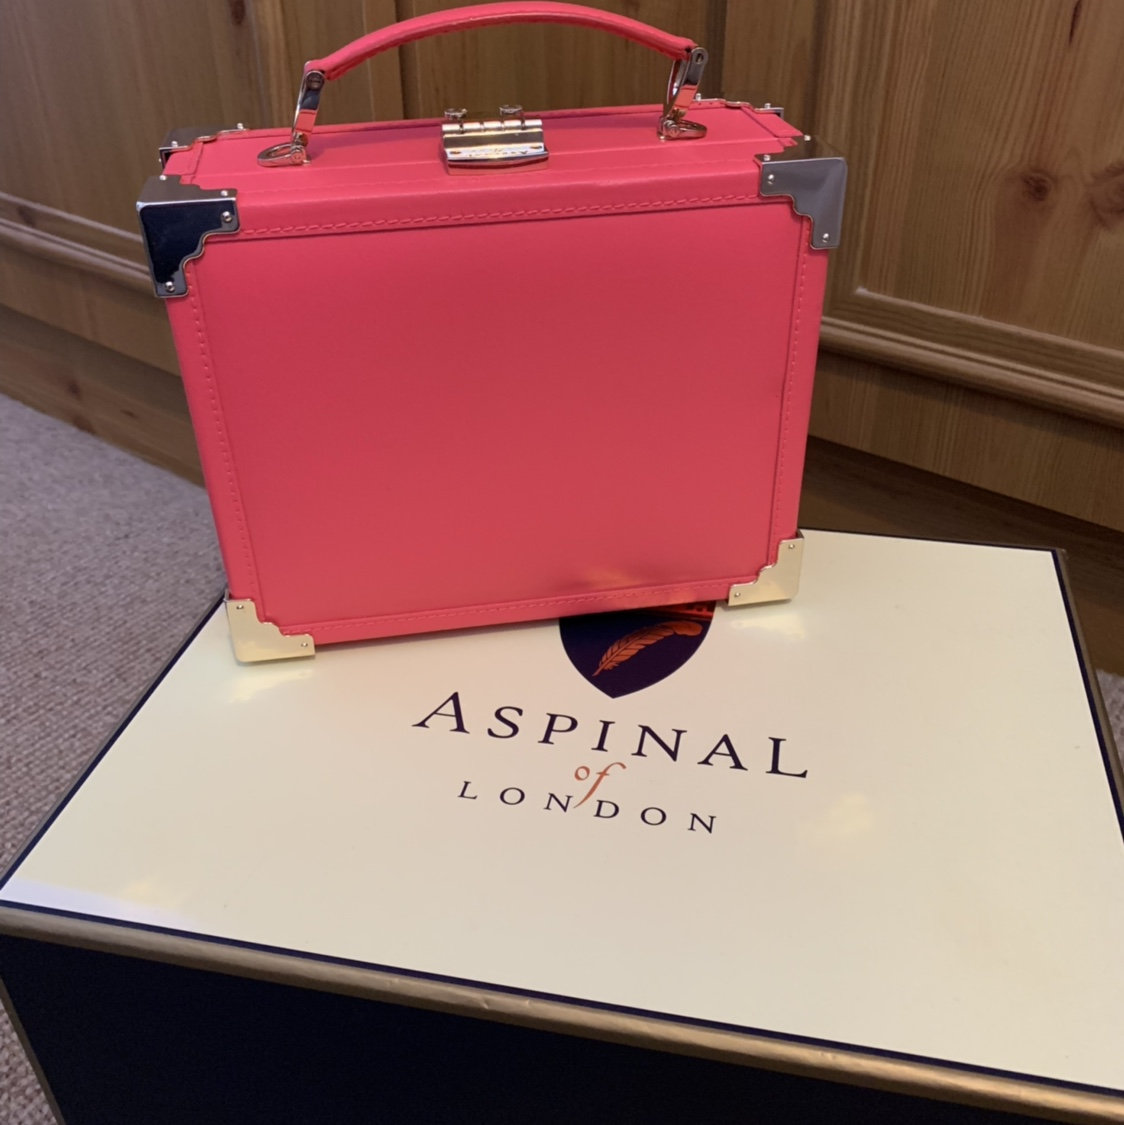 Aspinal of London trunk bag Smooth neon pink, has    - Depop